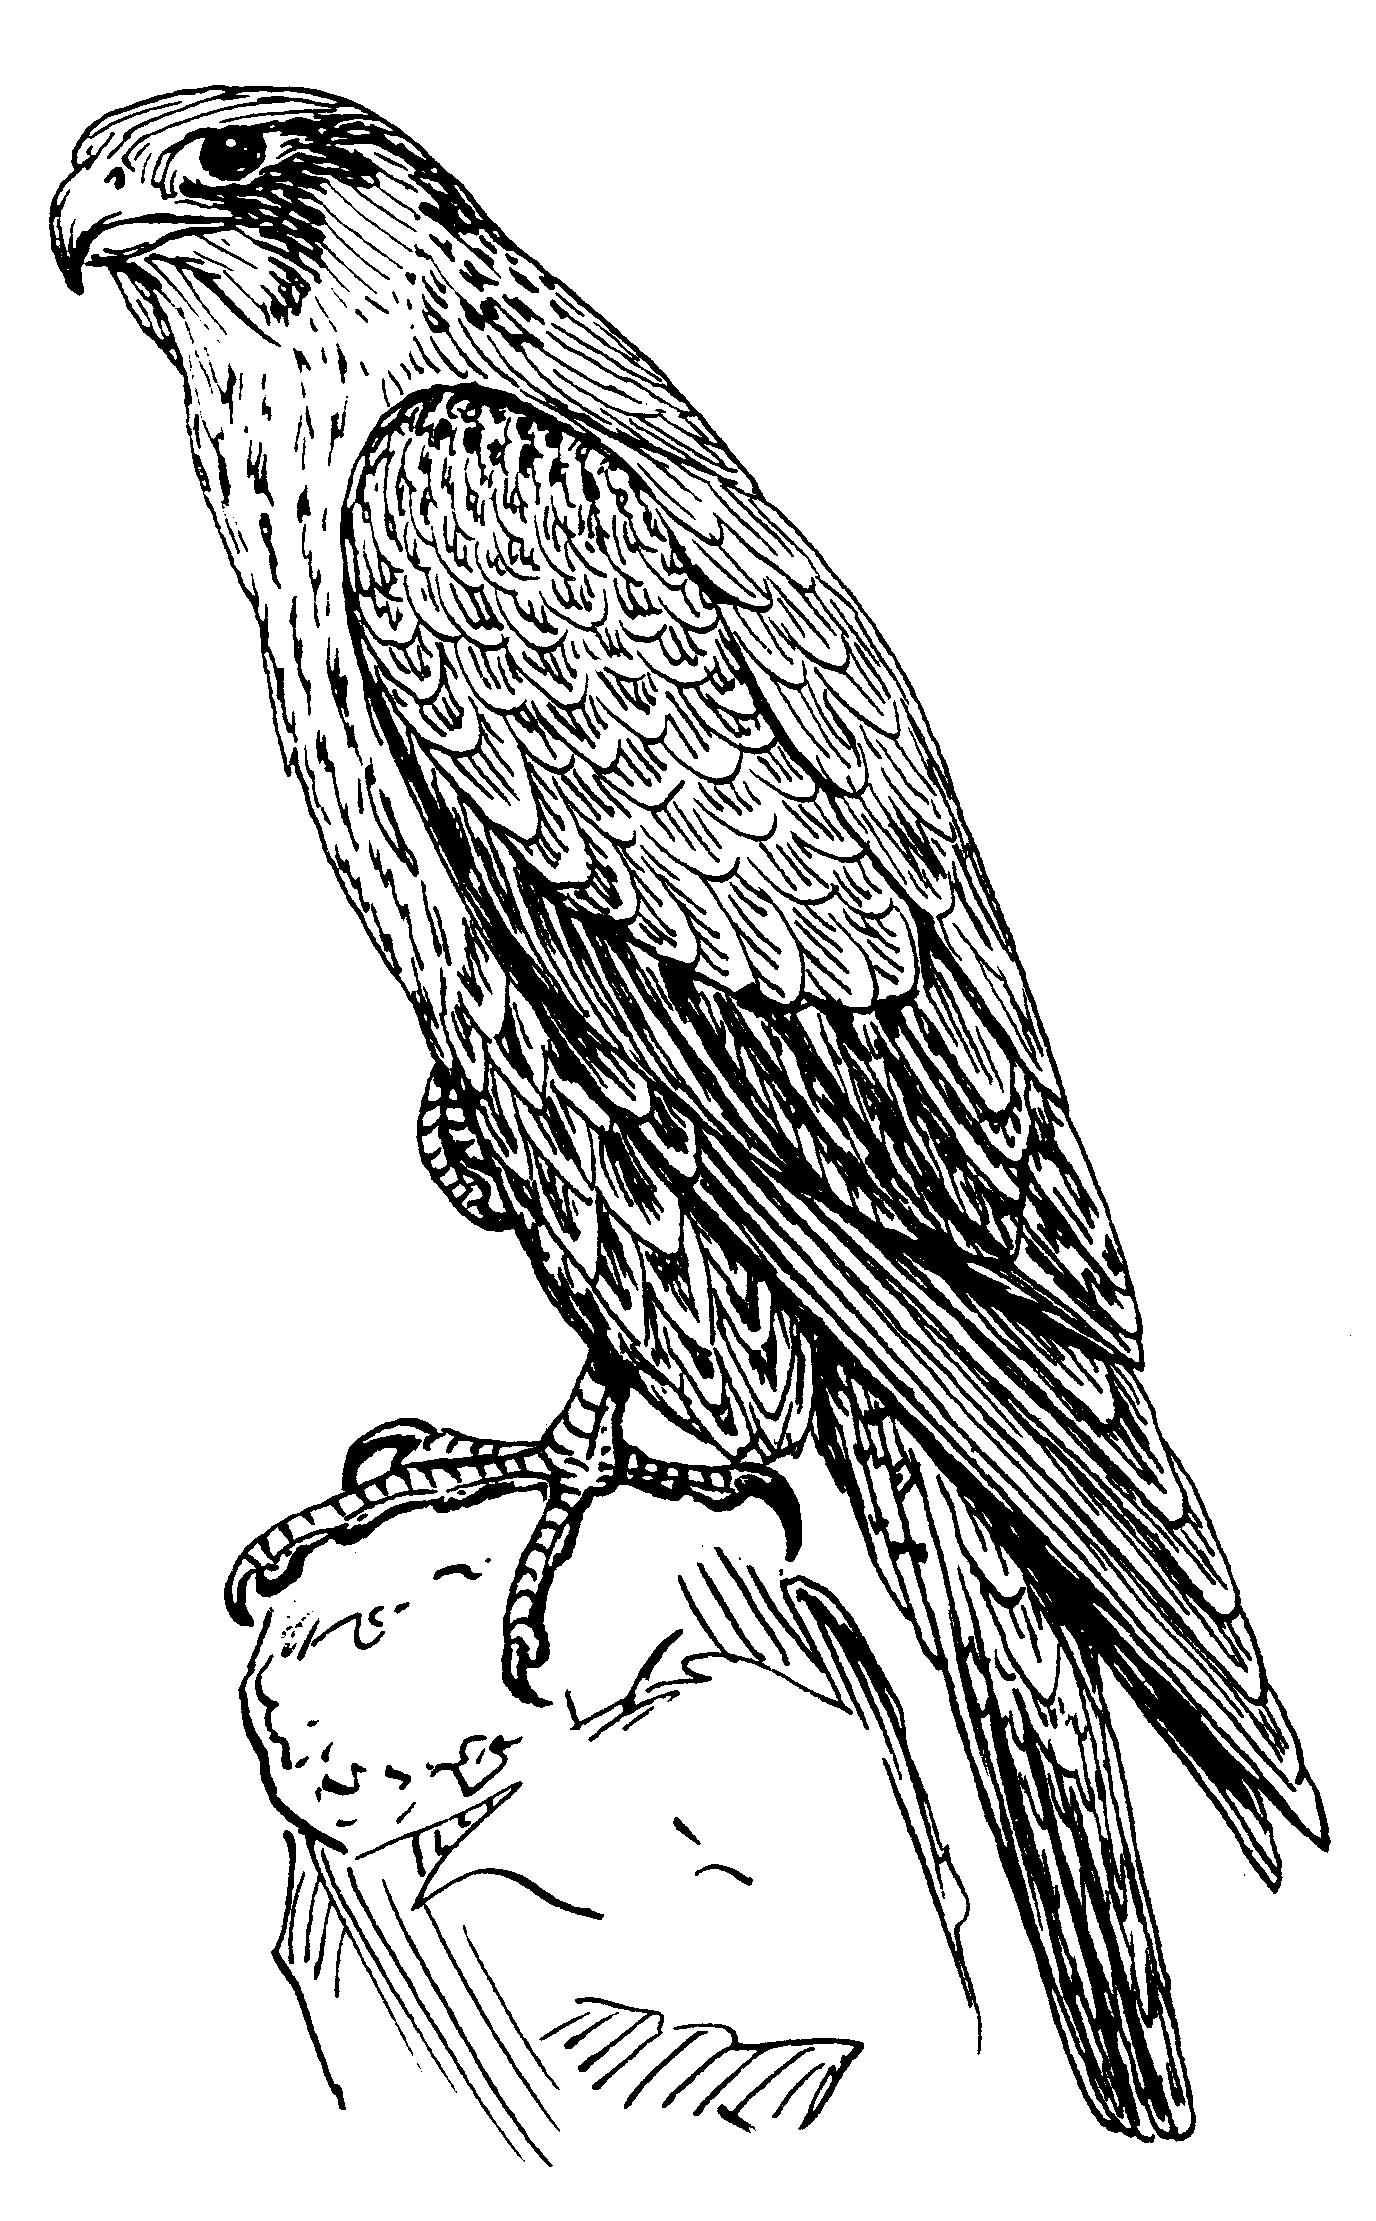 peregrine falcon drawings file peregrine falcon psf png rh pinterest co uk tattoo falcon peregrine Peregrine Falcon Hunting